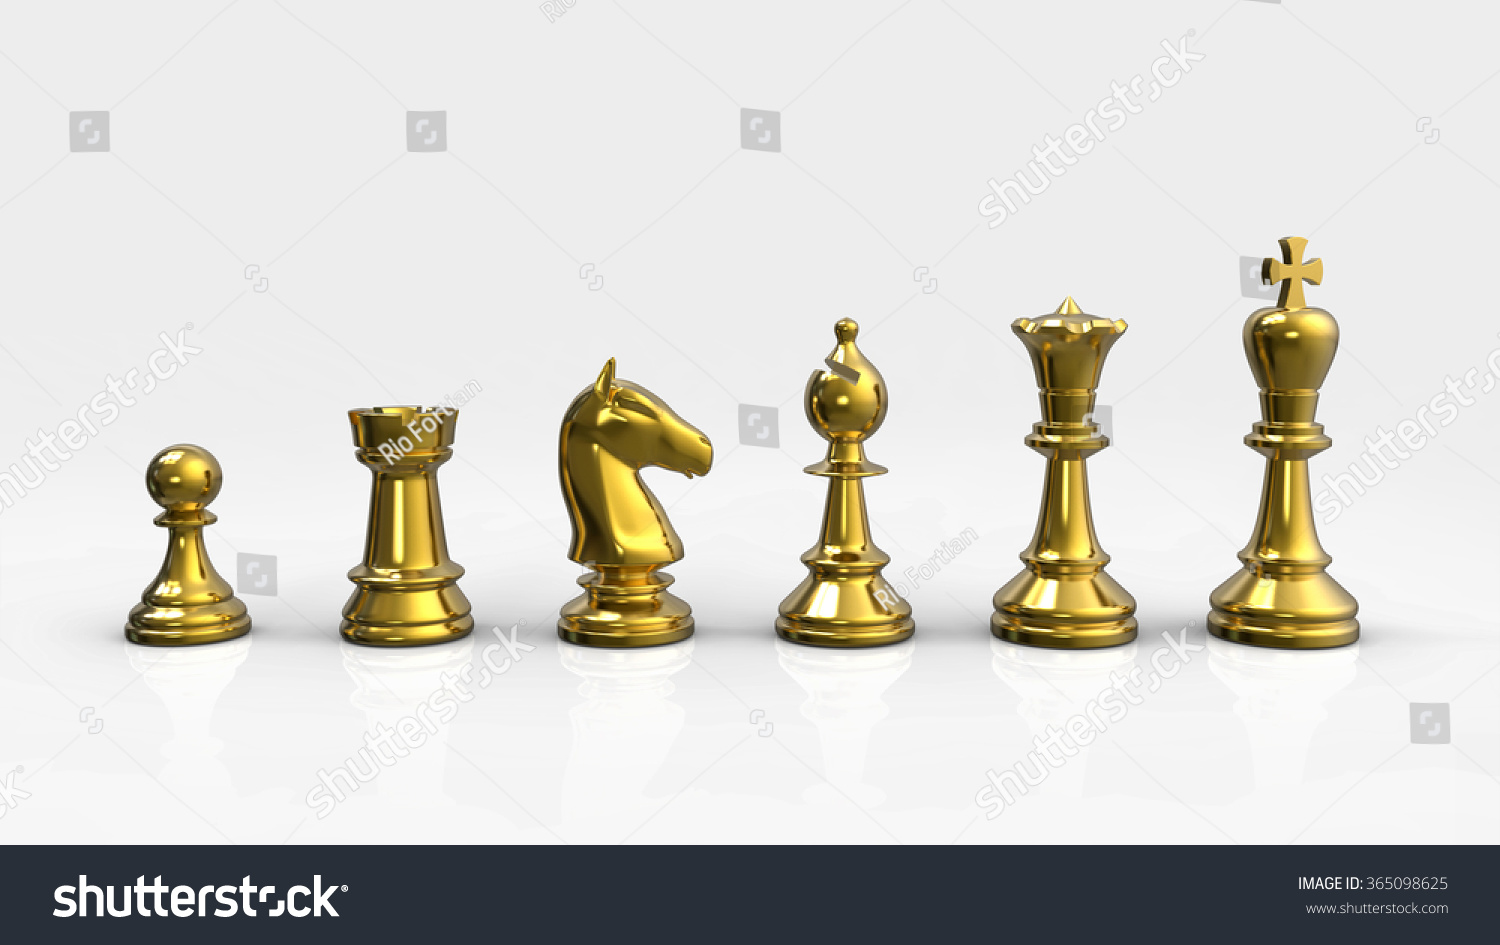 Gold Chess Pieces Chess Pieces Gold Stock Illustration Royalty Free Stock